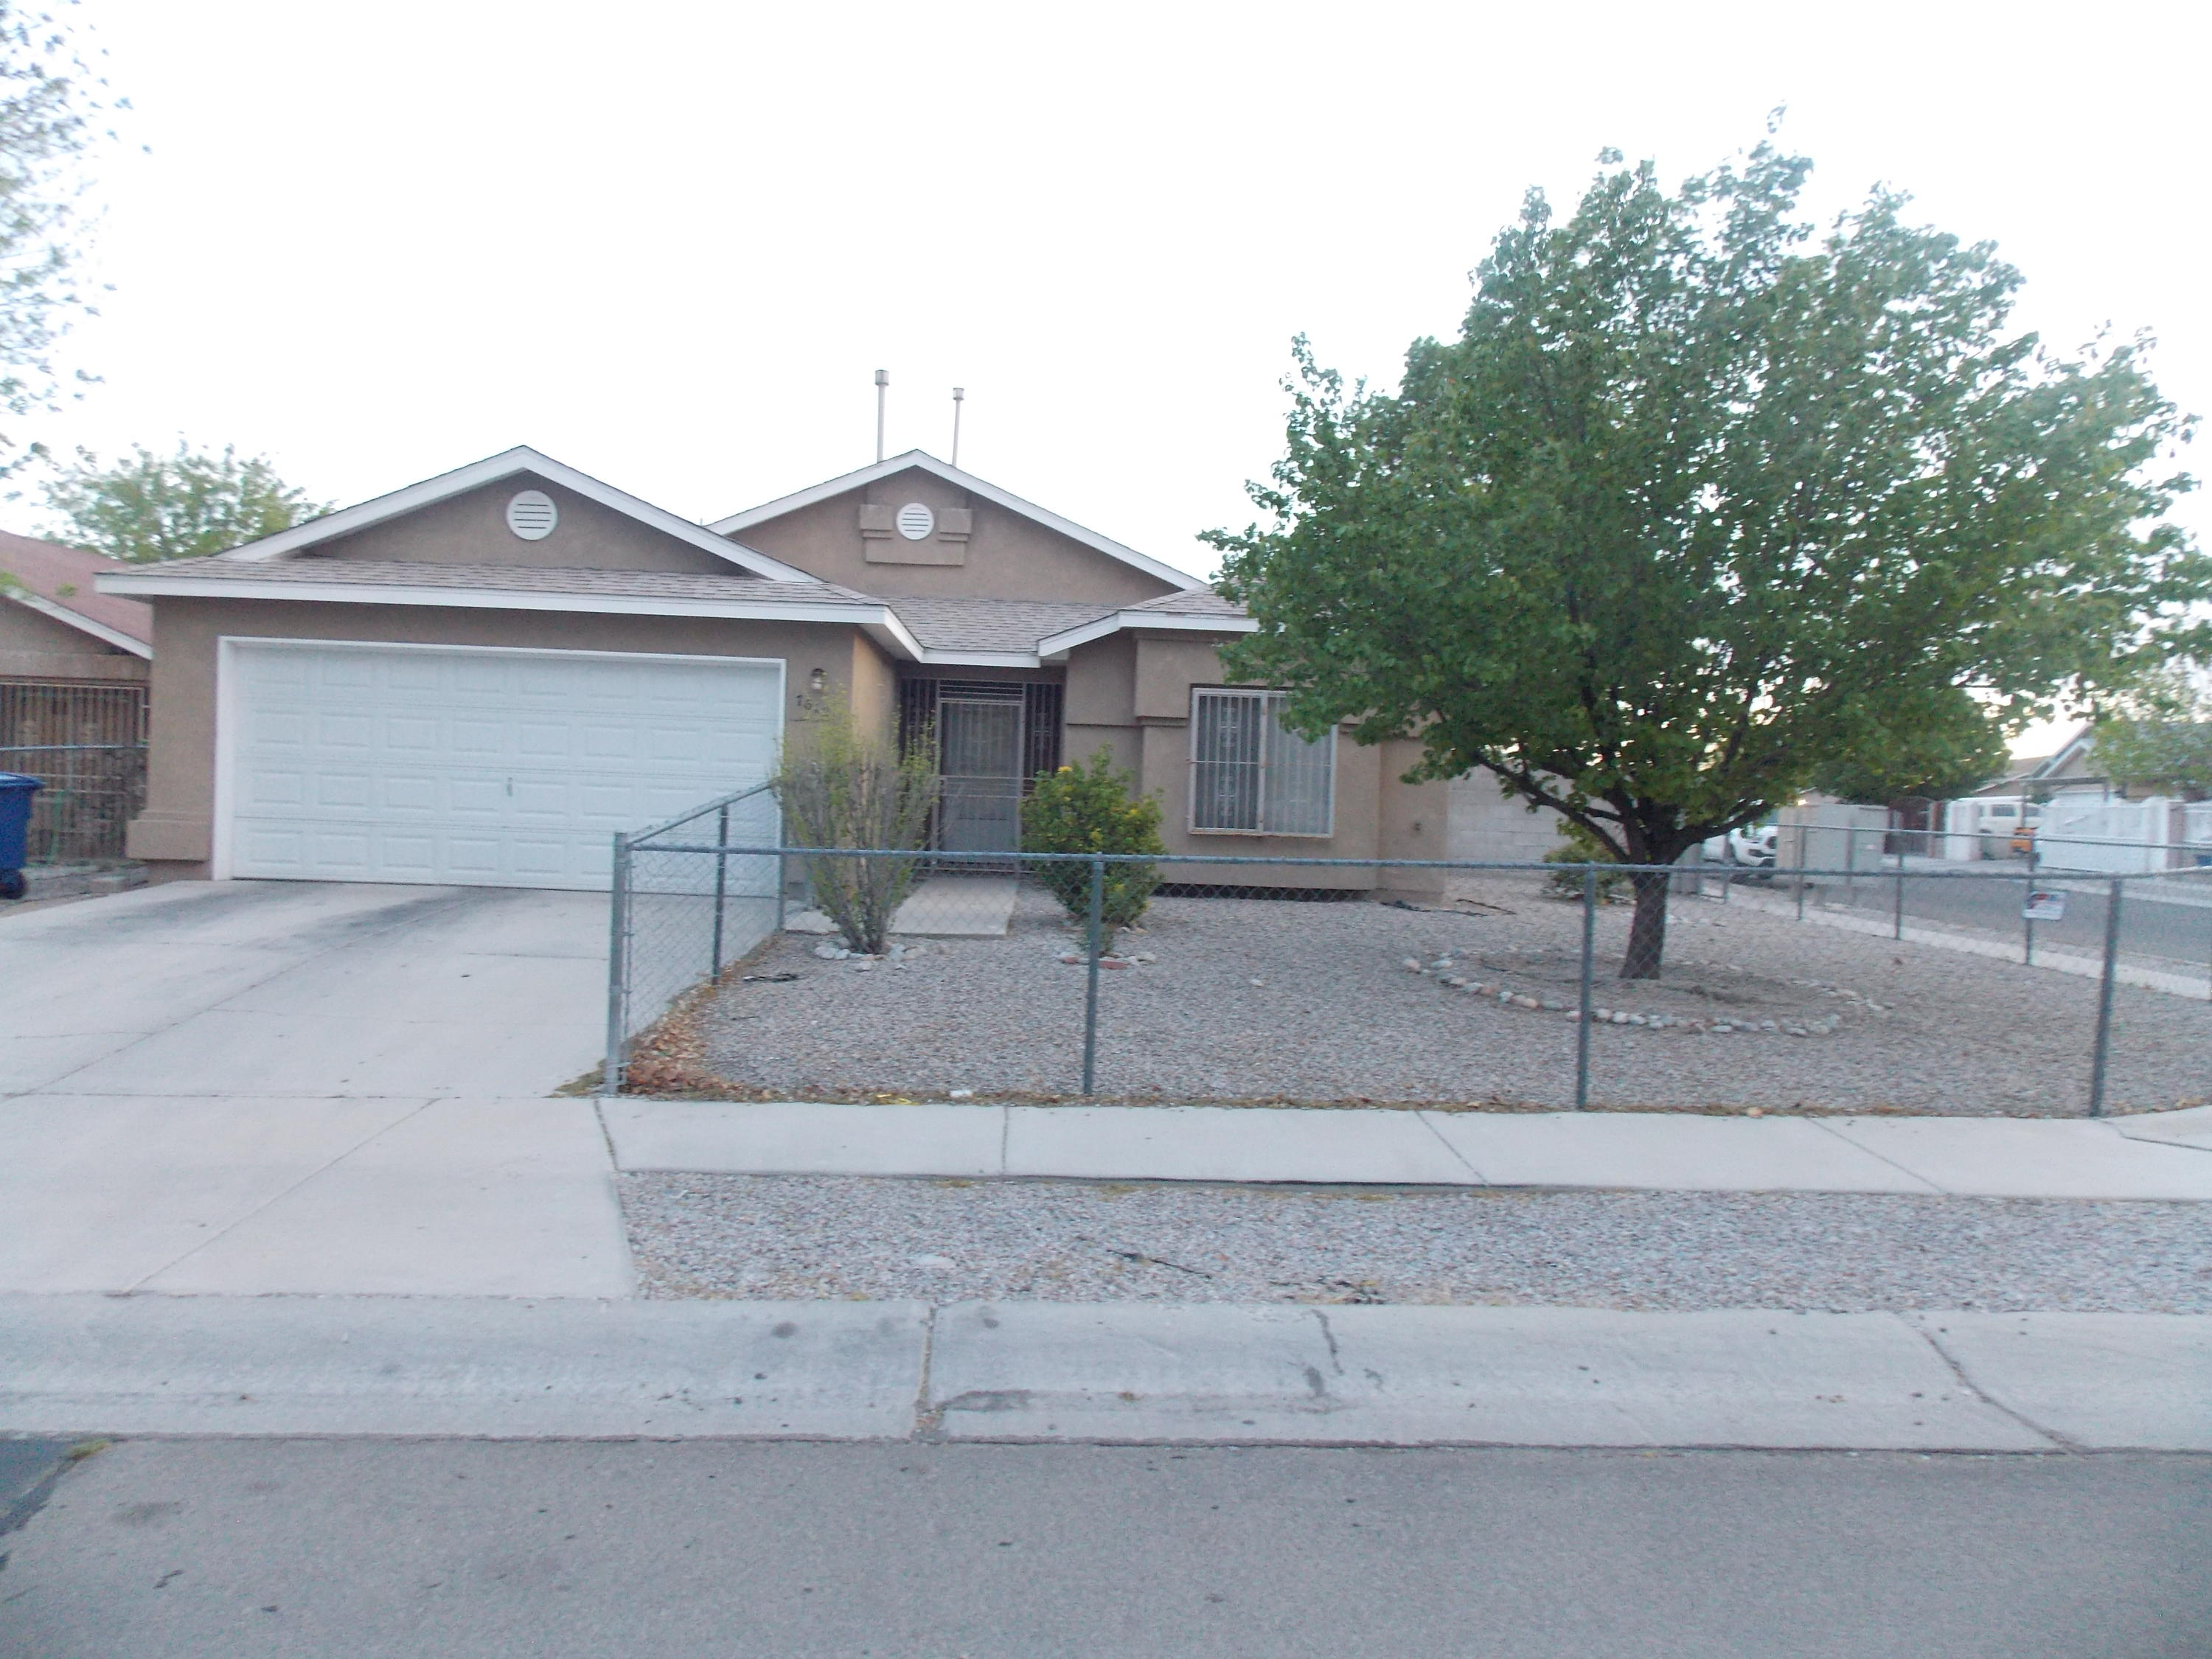 We have a nice corner lot home, with backyard access, 4 bedrooms, 2 baths, move in ready.We have a newer roof about 2 years and refrigerated air about 3 years. the rest of the home has been well taken care of.